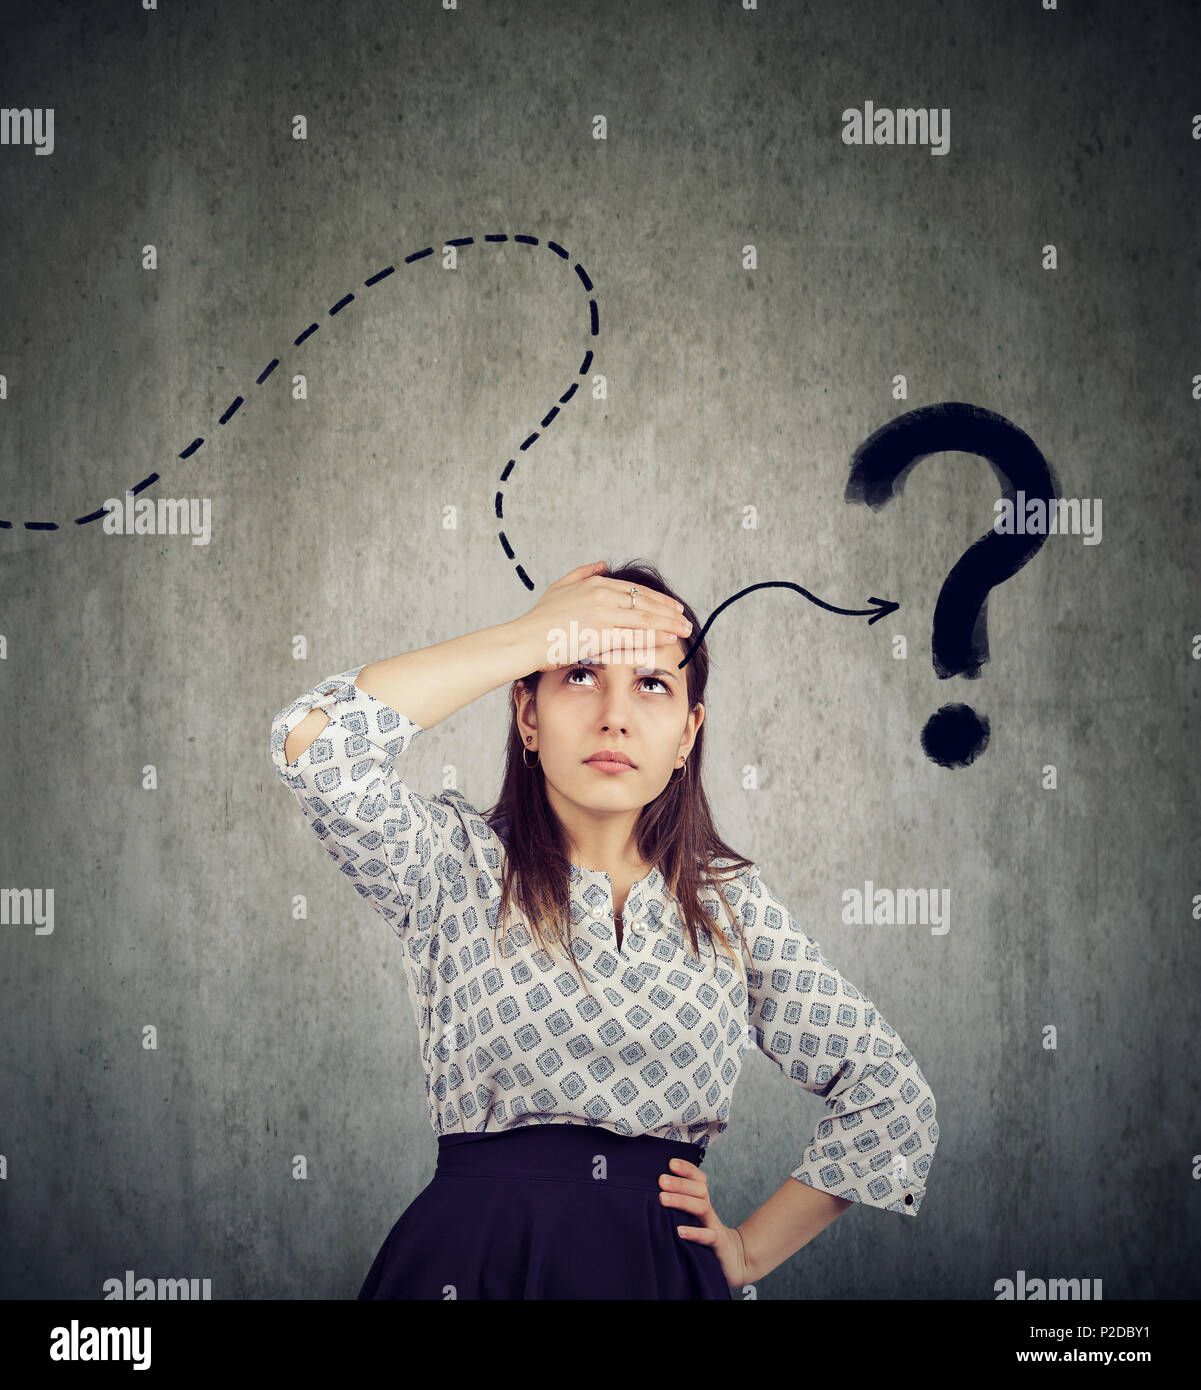 Young woman thinking hard trying to remember has a question - Stock Image